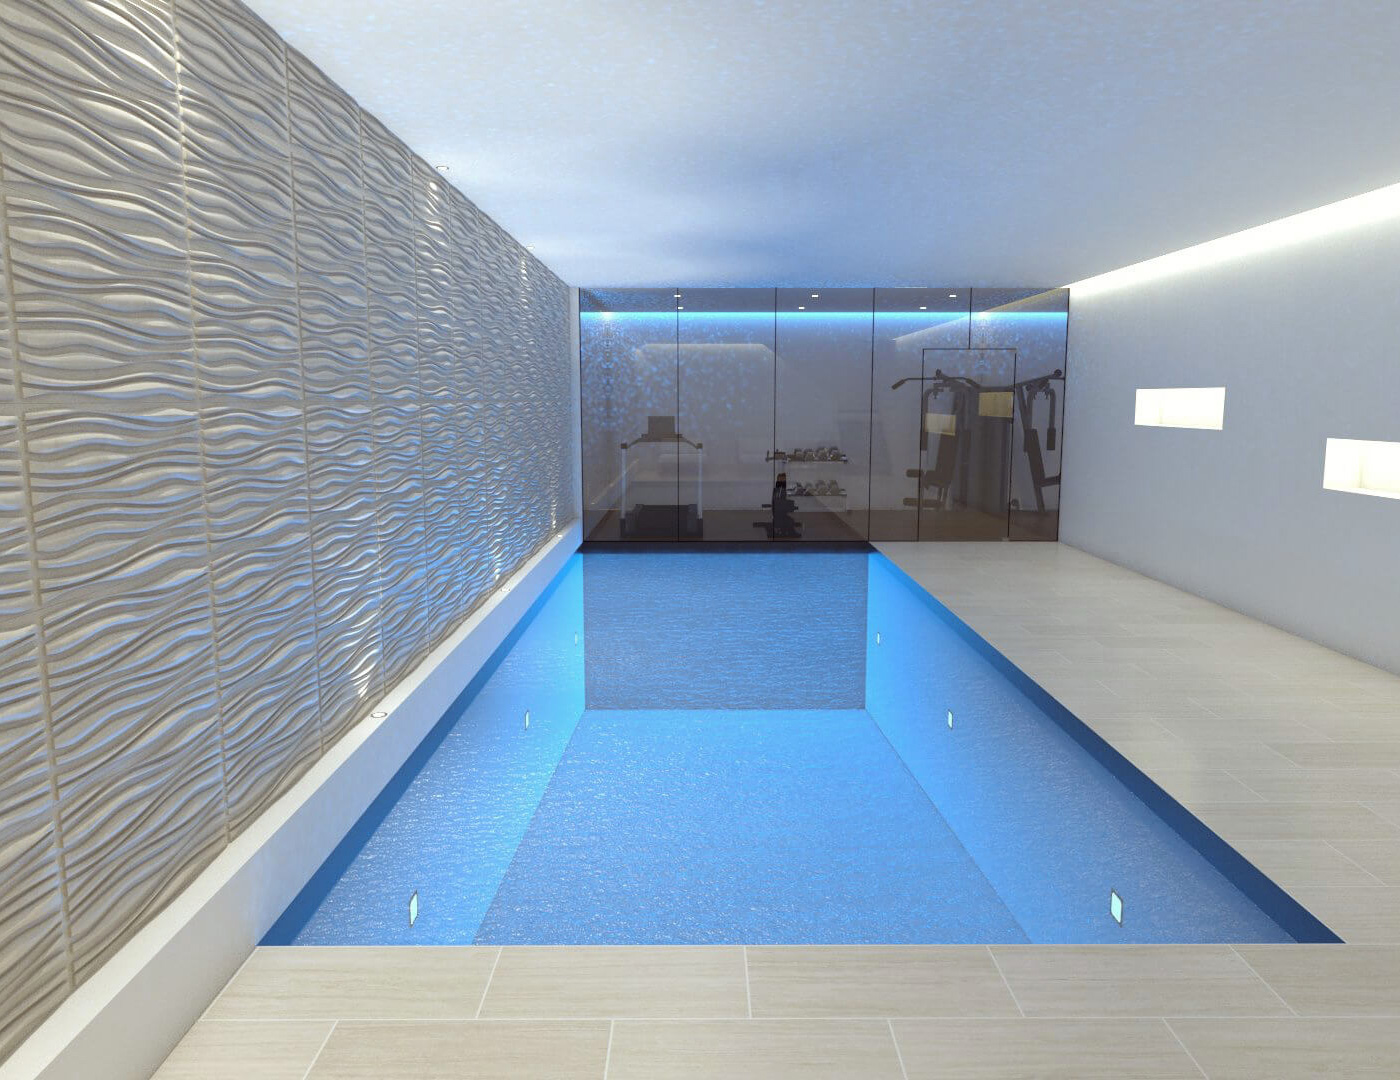 Basement swimming pool steam room spa construction Basement swimming pool construction